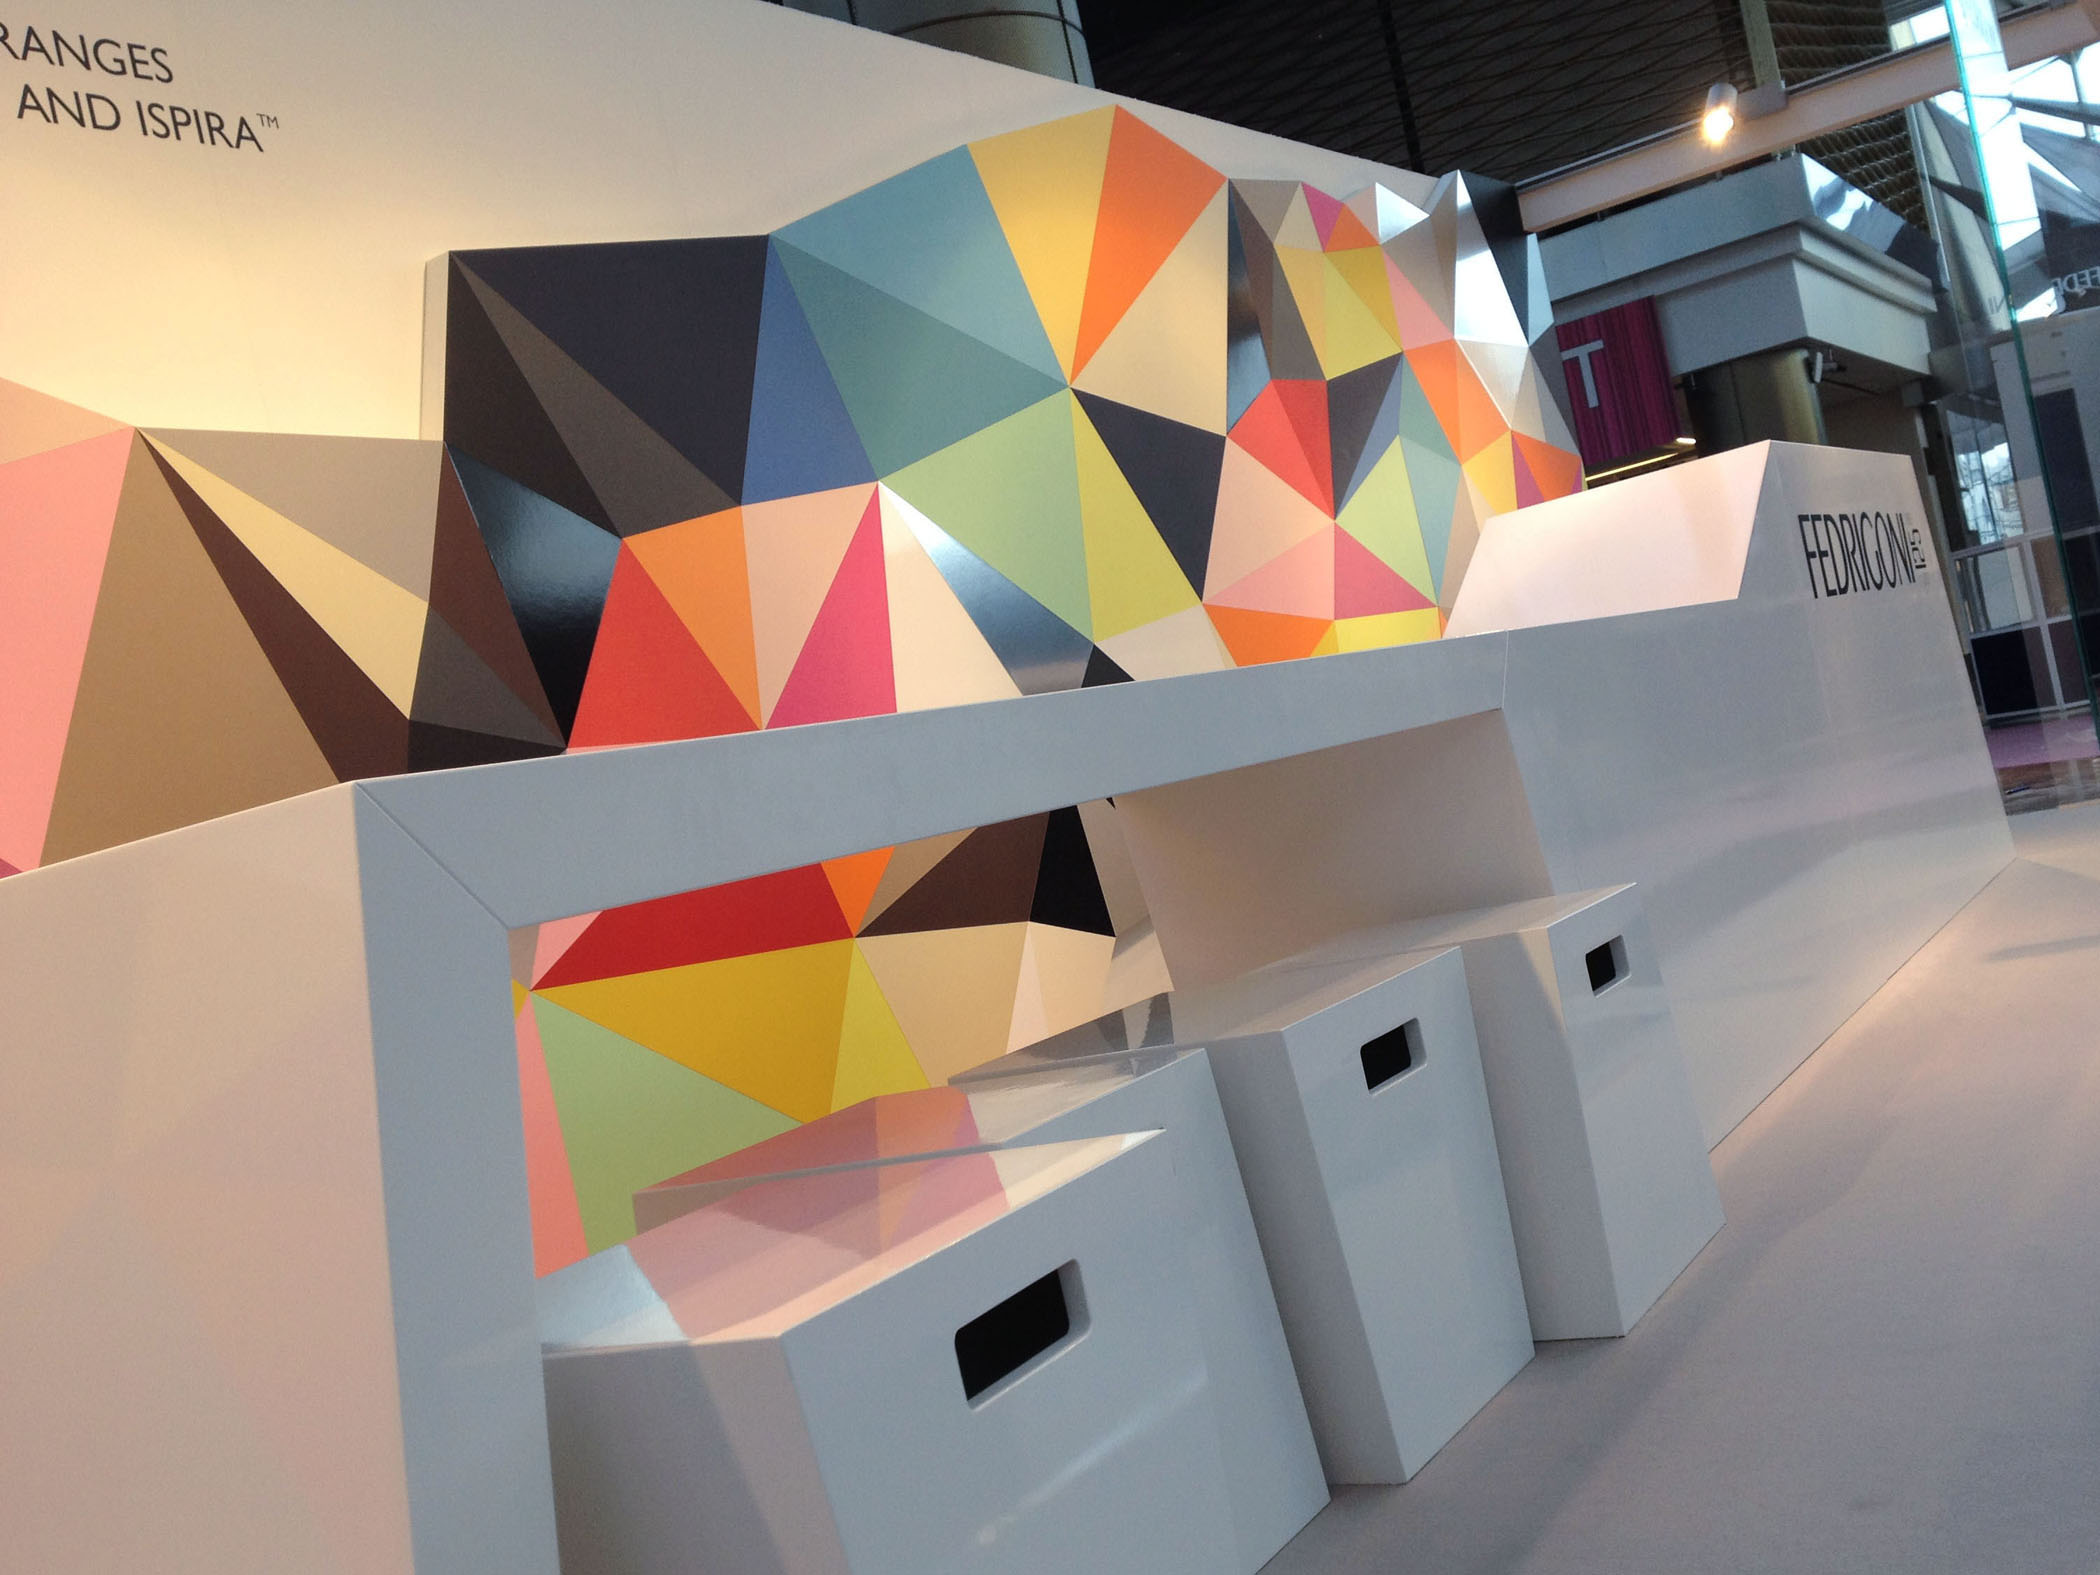 Fedrigoni Papers Woodstock Ispira collection stand LuxePack Montecarlo design project 03